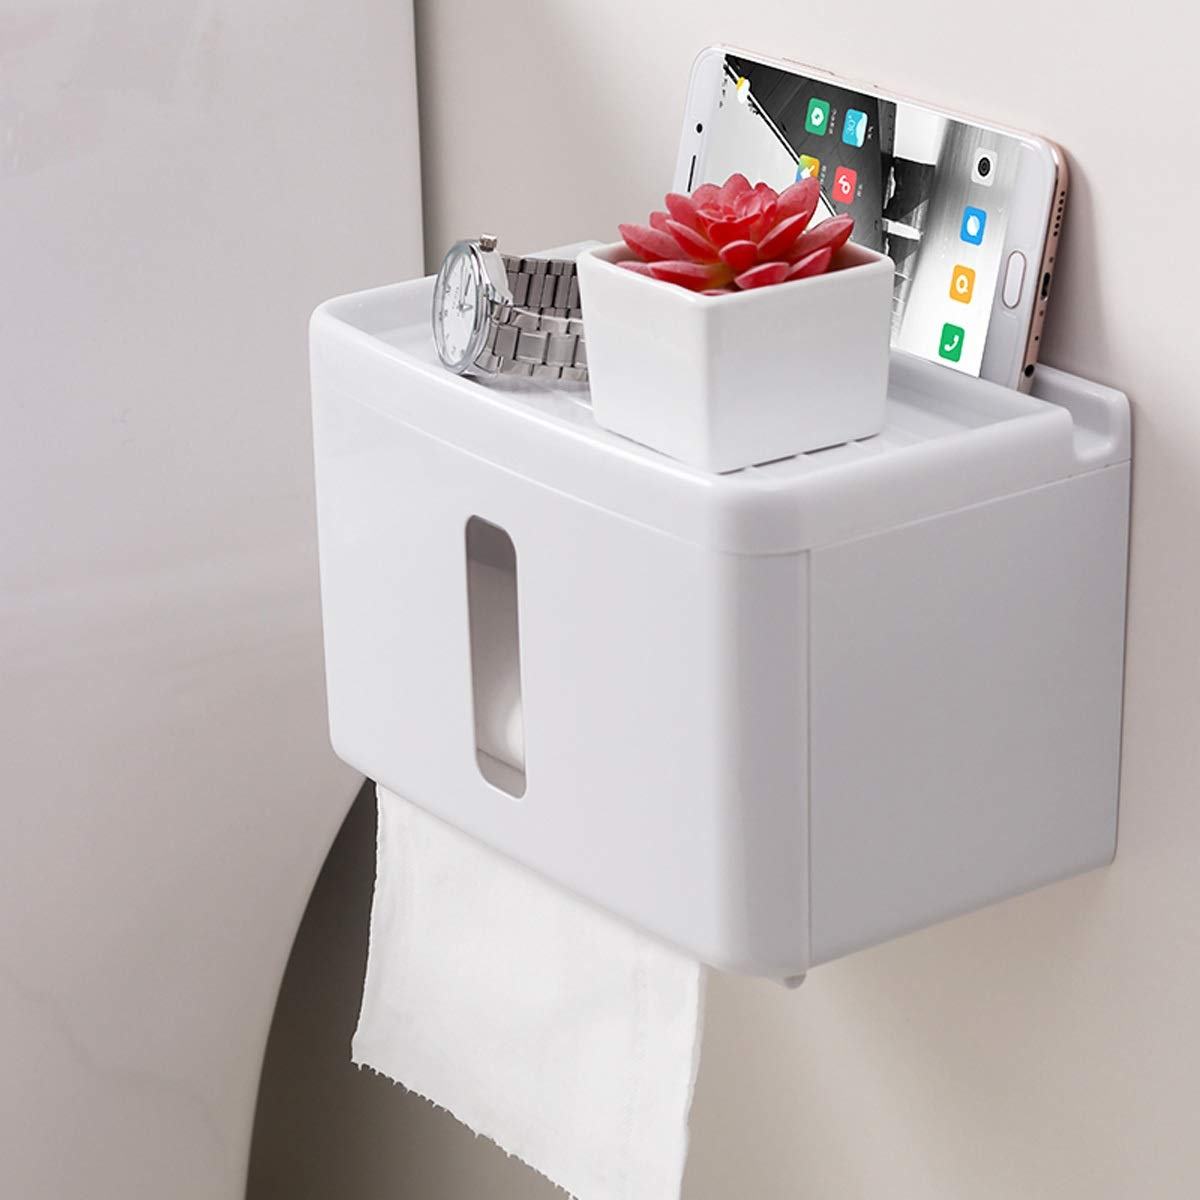 HAOMINGTIAN Tissue Box - Multi-Purpose Toilet Paper Holder Wall-Mounted Punch-Free Tissue Box with Storage Trash Bag Holder for Bathroom or Kitchen (Shape : Rectangle)